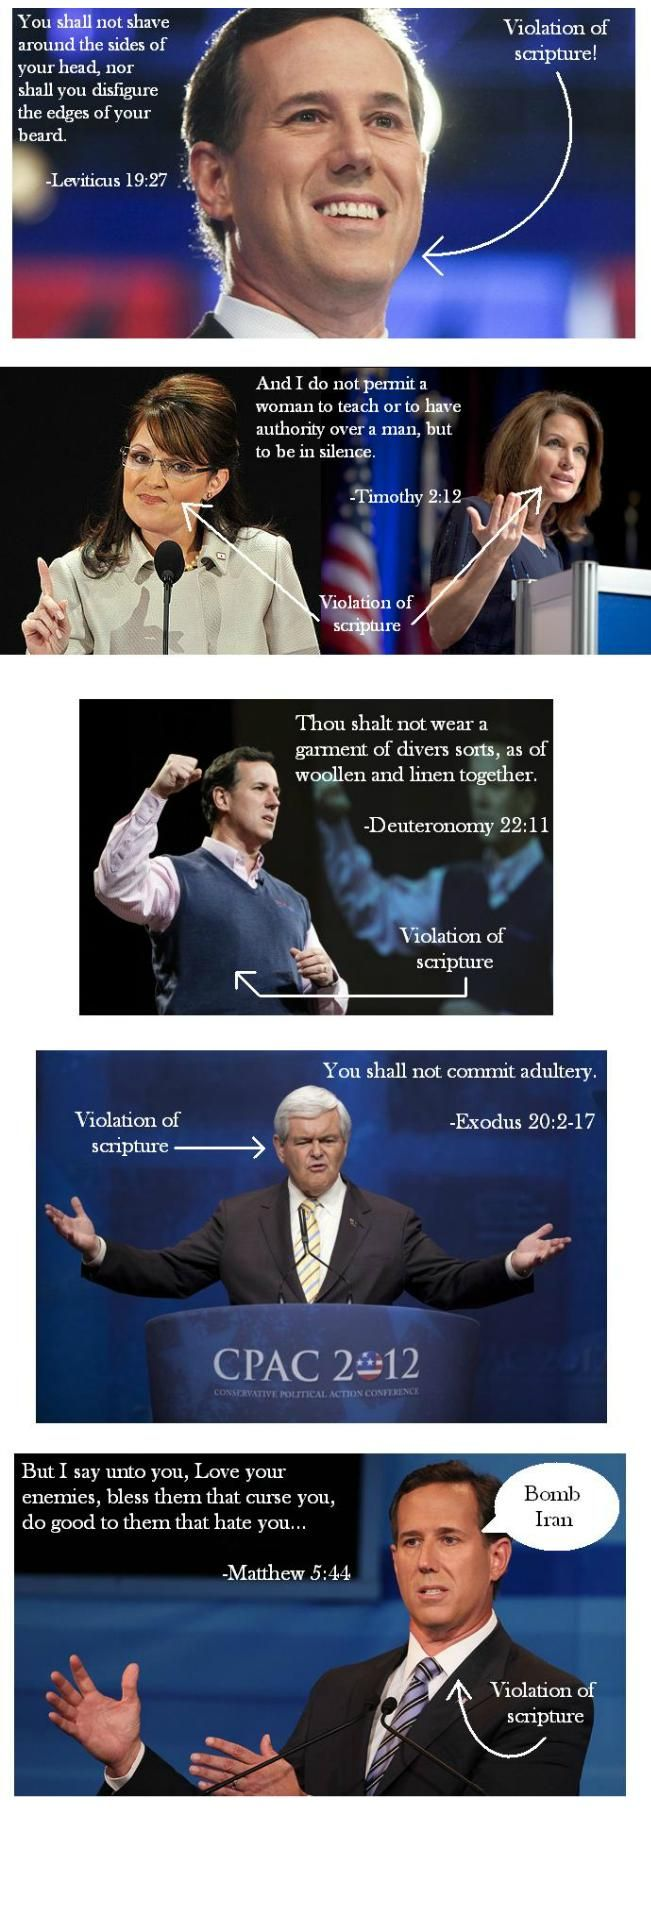 Hypocrites and cherry pickers- What was Jesus' line about that?